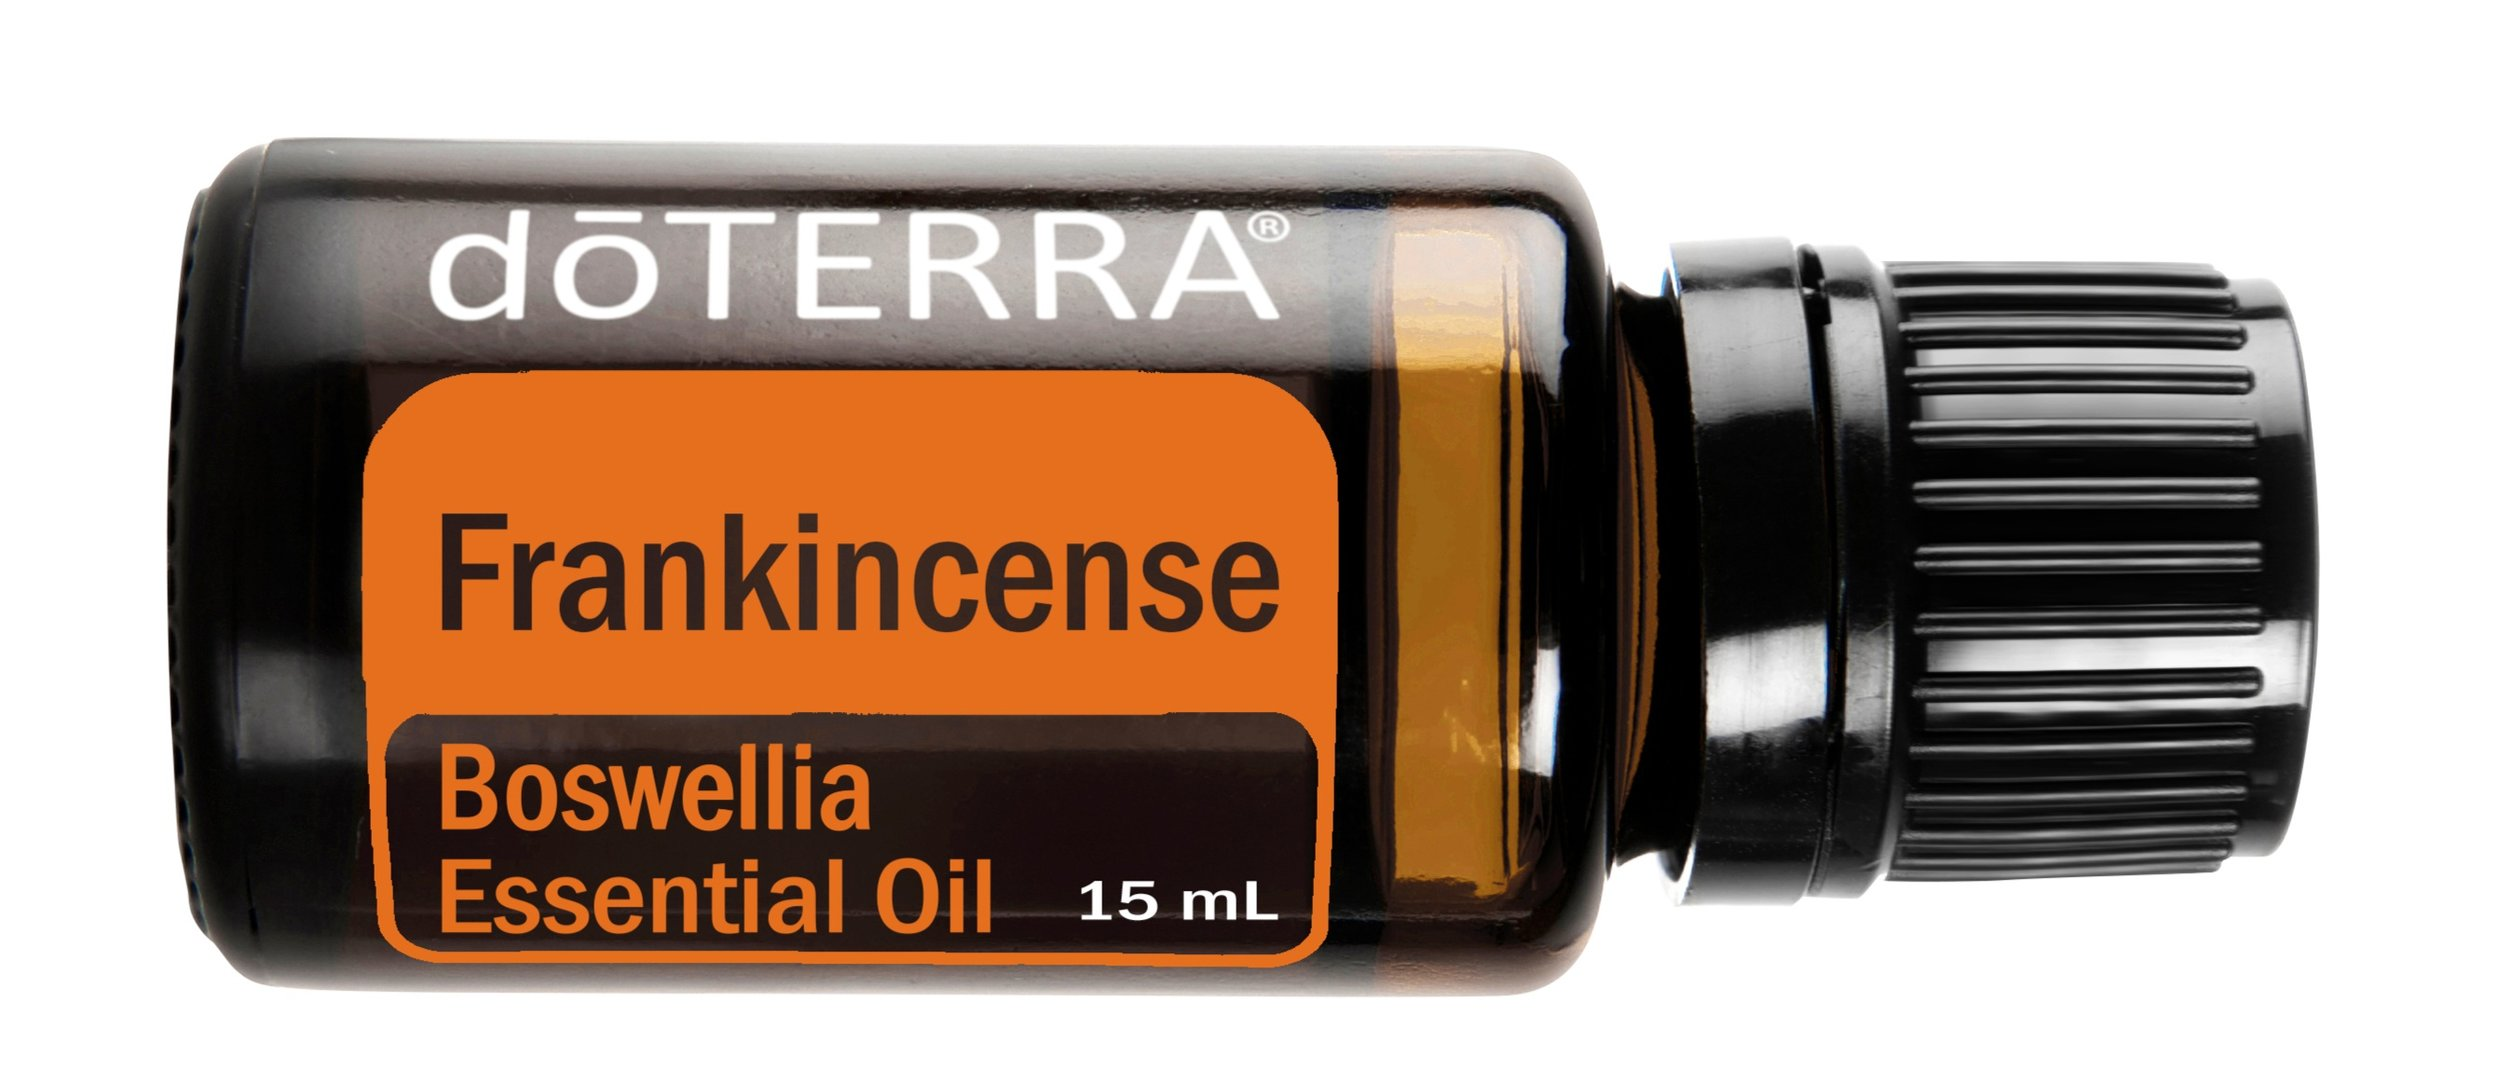 Frankincense    Calm Down.  Inhale with Lavender and Peppermint and apply to neck to help calm stress and relieve tension.  Nourish Your Skin.  Use a drop of Frankincense with 3 drops of carrier oil or dōTERRA Spa Hand and Body Lotion for beautiful, radiant looking skin.  Spread The Love.  Frankincense smells wonderful and uplifts the mood. Wear it as a perfume to lift your mood and feelings of alertness.  Overworked Hands?  Rub Frankincense on your hands after a long day of gardening or working to promote a normal inflammatory response.  Time To Focus.  Apply 1-2 drops to your temples and the back of your neck to help improve your concentration.  Nails Of Steel.  Dry weather can take a toll on your nails. Try applying a drop of Frankincense to strengthen weak fingernails.  Goodness In A Cup.  Dilute a drop of Frankincense in 1 teaspoon of honey or in a small herbal tea and take daily to maintain good health.  A Calming Mood Lifter.  Frankincense can be applied to the bottoms of feet to relax and calm mood swings minor to major. In fact, it has been used to calm expectant mothers during pregnancy and labor. Diffuse in the room or massage a drop onto the chest or back of the neck.  Cellular Vigour.  Frankincense is a component of DDR Prime because it promotes healthy cellular proliferation. So, take Frankincense in a Veggie Capsule to support healthy cells in your body!  No More Nerves.  Use Frankincense to help relieve anxiety and create a positive mood! Try combining Frankincense, Peppermint and Wild Orange essential oil in your hand, rub hands together, and inhale deeply. This mix will also help with the most severe need for a three o' clock pick-me-up!  Be Youthful.  Frankincense can help promote youthful, radiant looking skin and slow the signs of aging by reducing the appearance of skin imperfections. Dab with 1 drop of a carrier oil to trouble areas.  Relax And Revitalise.  Soak in a warm Frankincense bath to calm the nerves or diffuse Frankincense in the bath